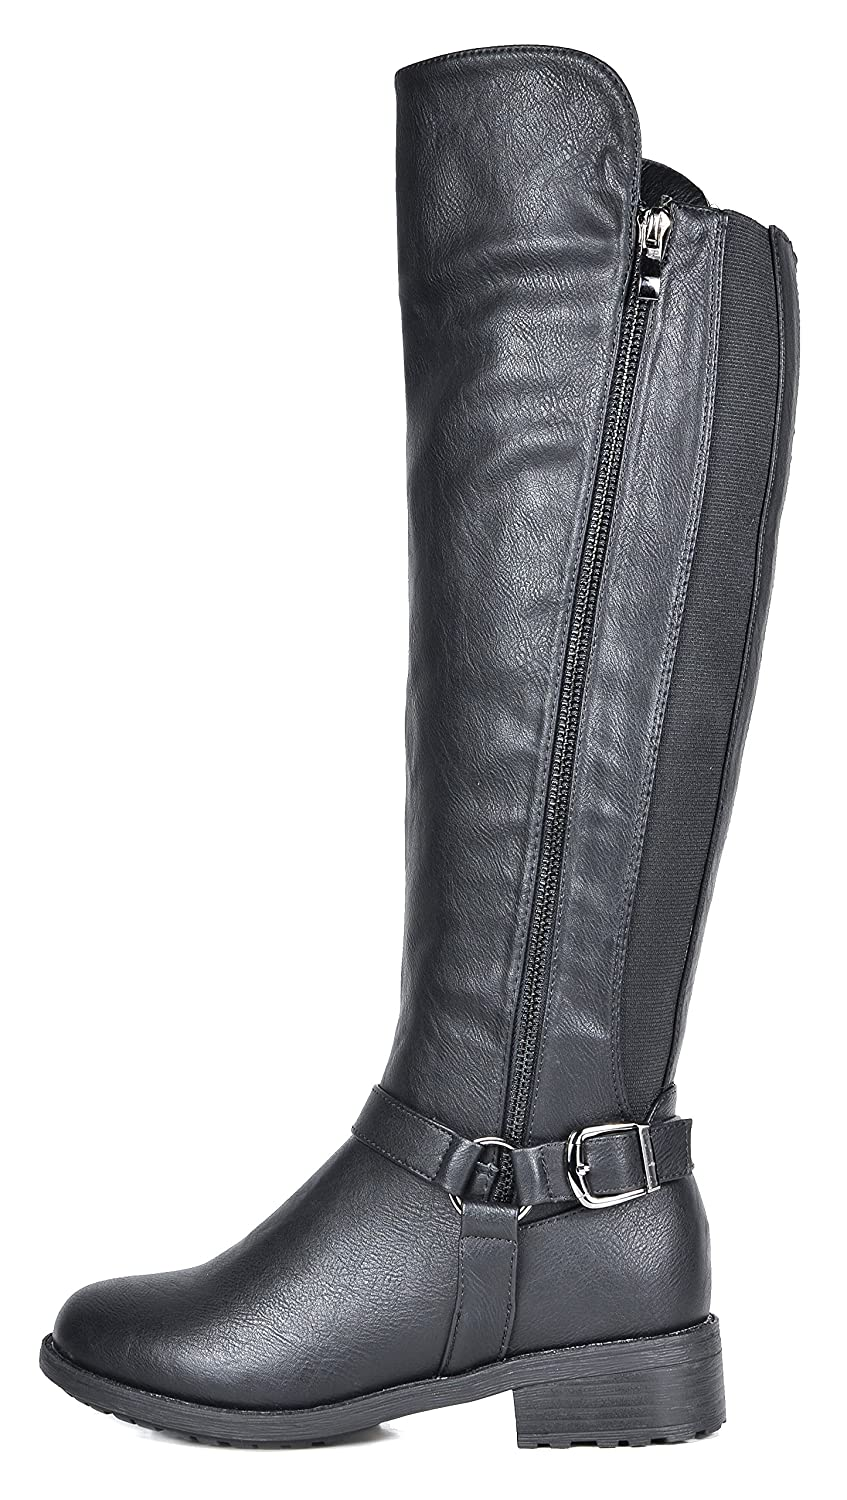 Women's Sunrider Knee High Winter Military Combat Boots